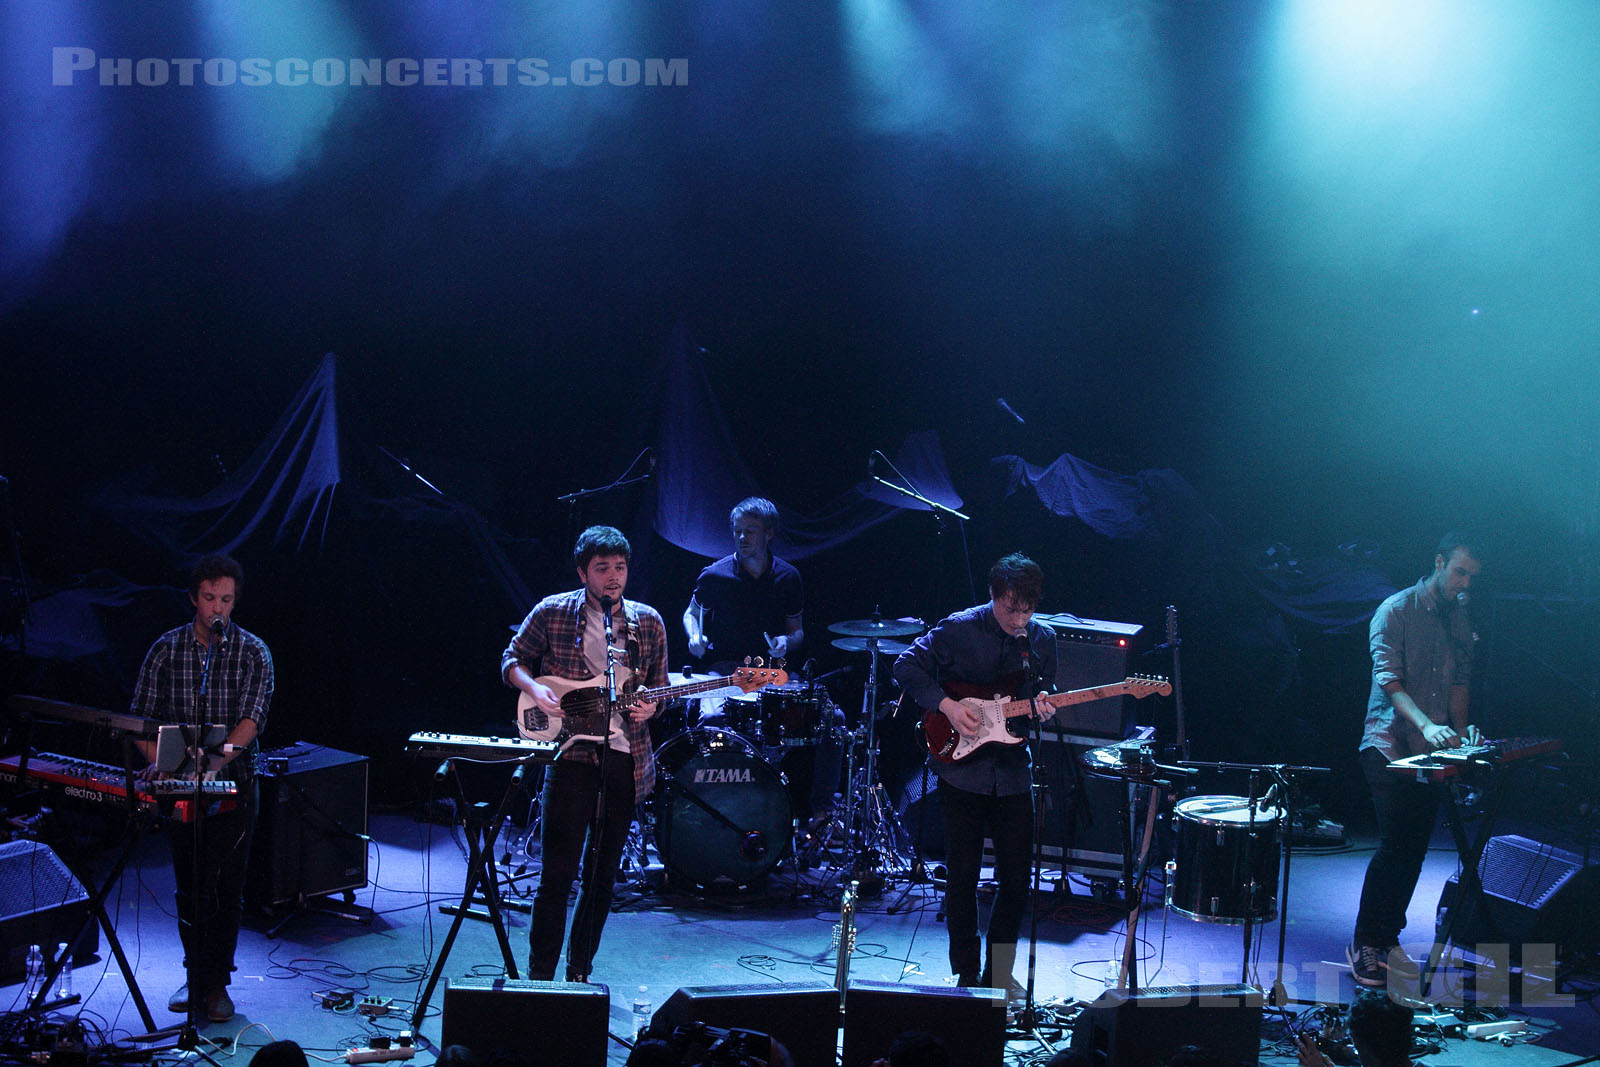 WE ARE MATCH - 2013-11-09 - PARIS - La Cigale